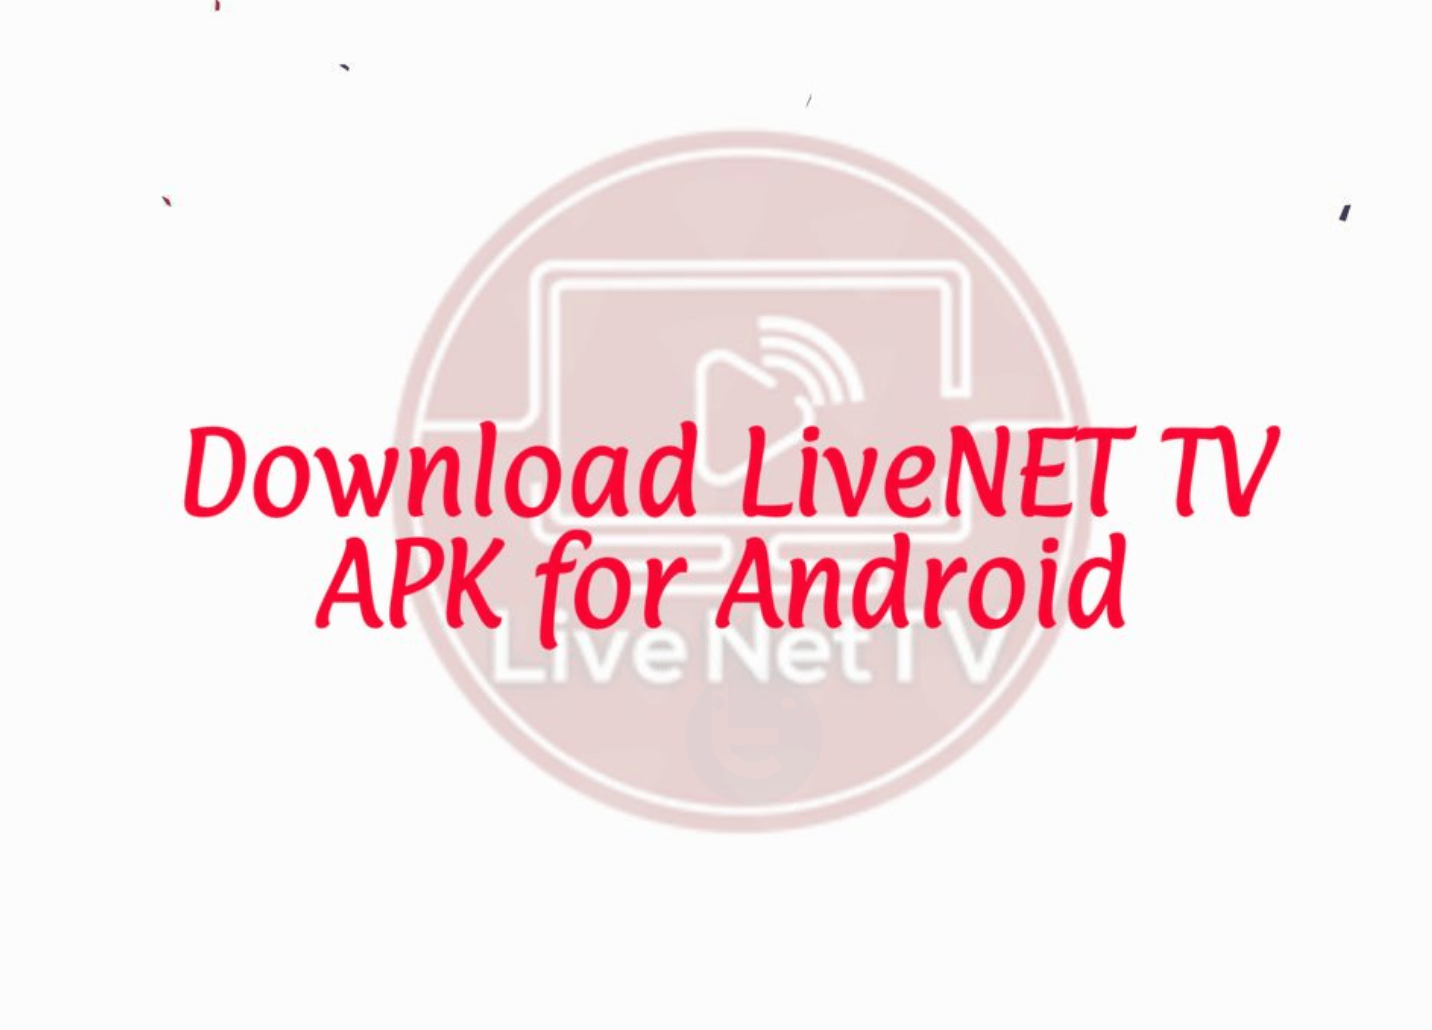 🌱 Live nettv apk download old version | Live NetTV 2 4